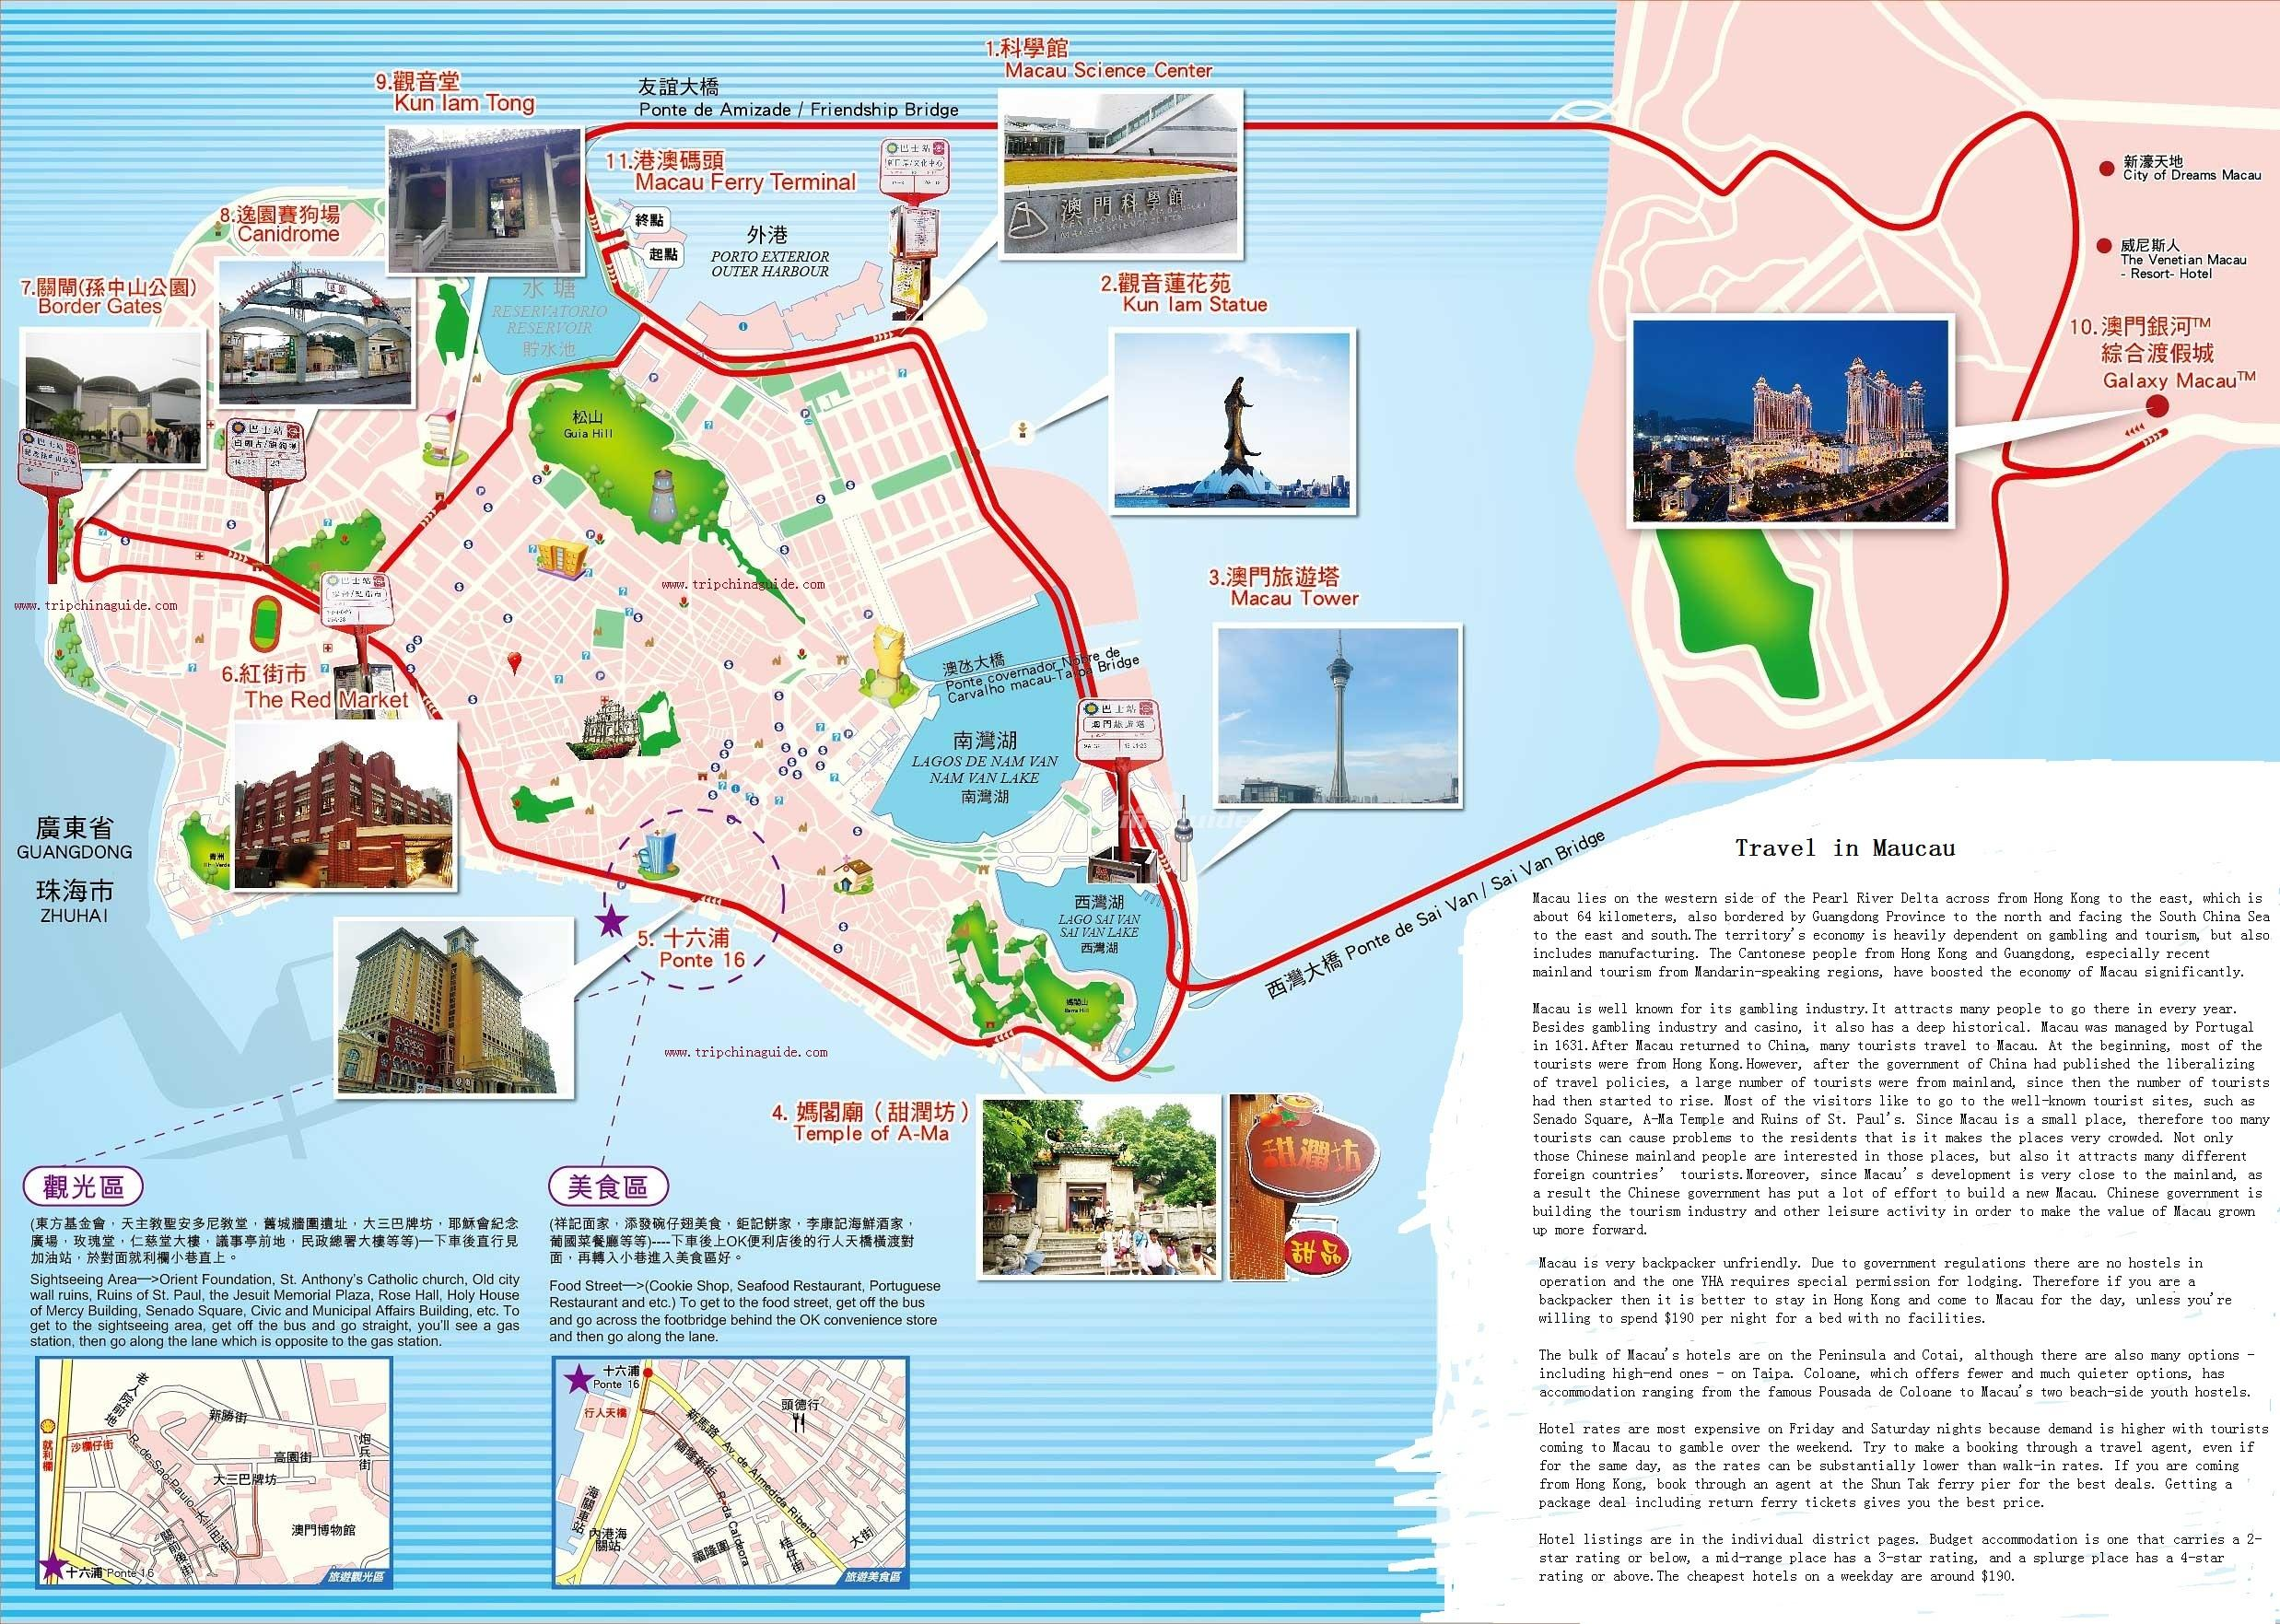 Macau Travel Map - Maps of Macau on map of sao tome principe, map of hong kong, map of cantonese, map of nanjing university, map of mongolia, map of french equatorial africa, map china, map of bissau, map of hankou, map of scotland, map of sulaymaniyah, map of no. africa, map of ormuz, map of brunei, map of asia, map of cotai, map of malawi, map of democratic kampuchea, map of jinzhou, map of united arab of emirates,